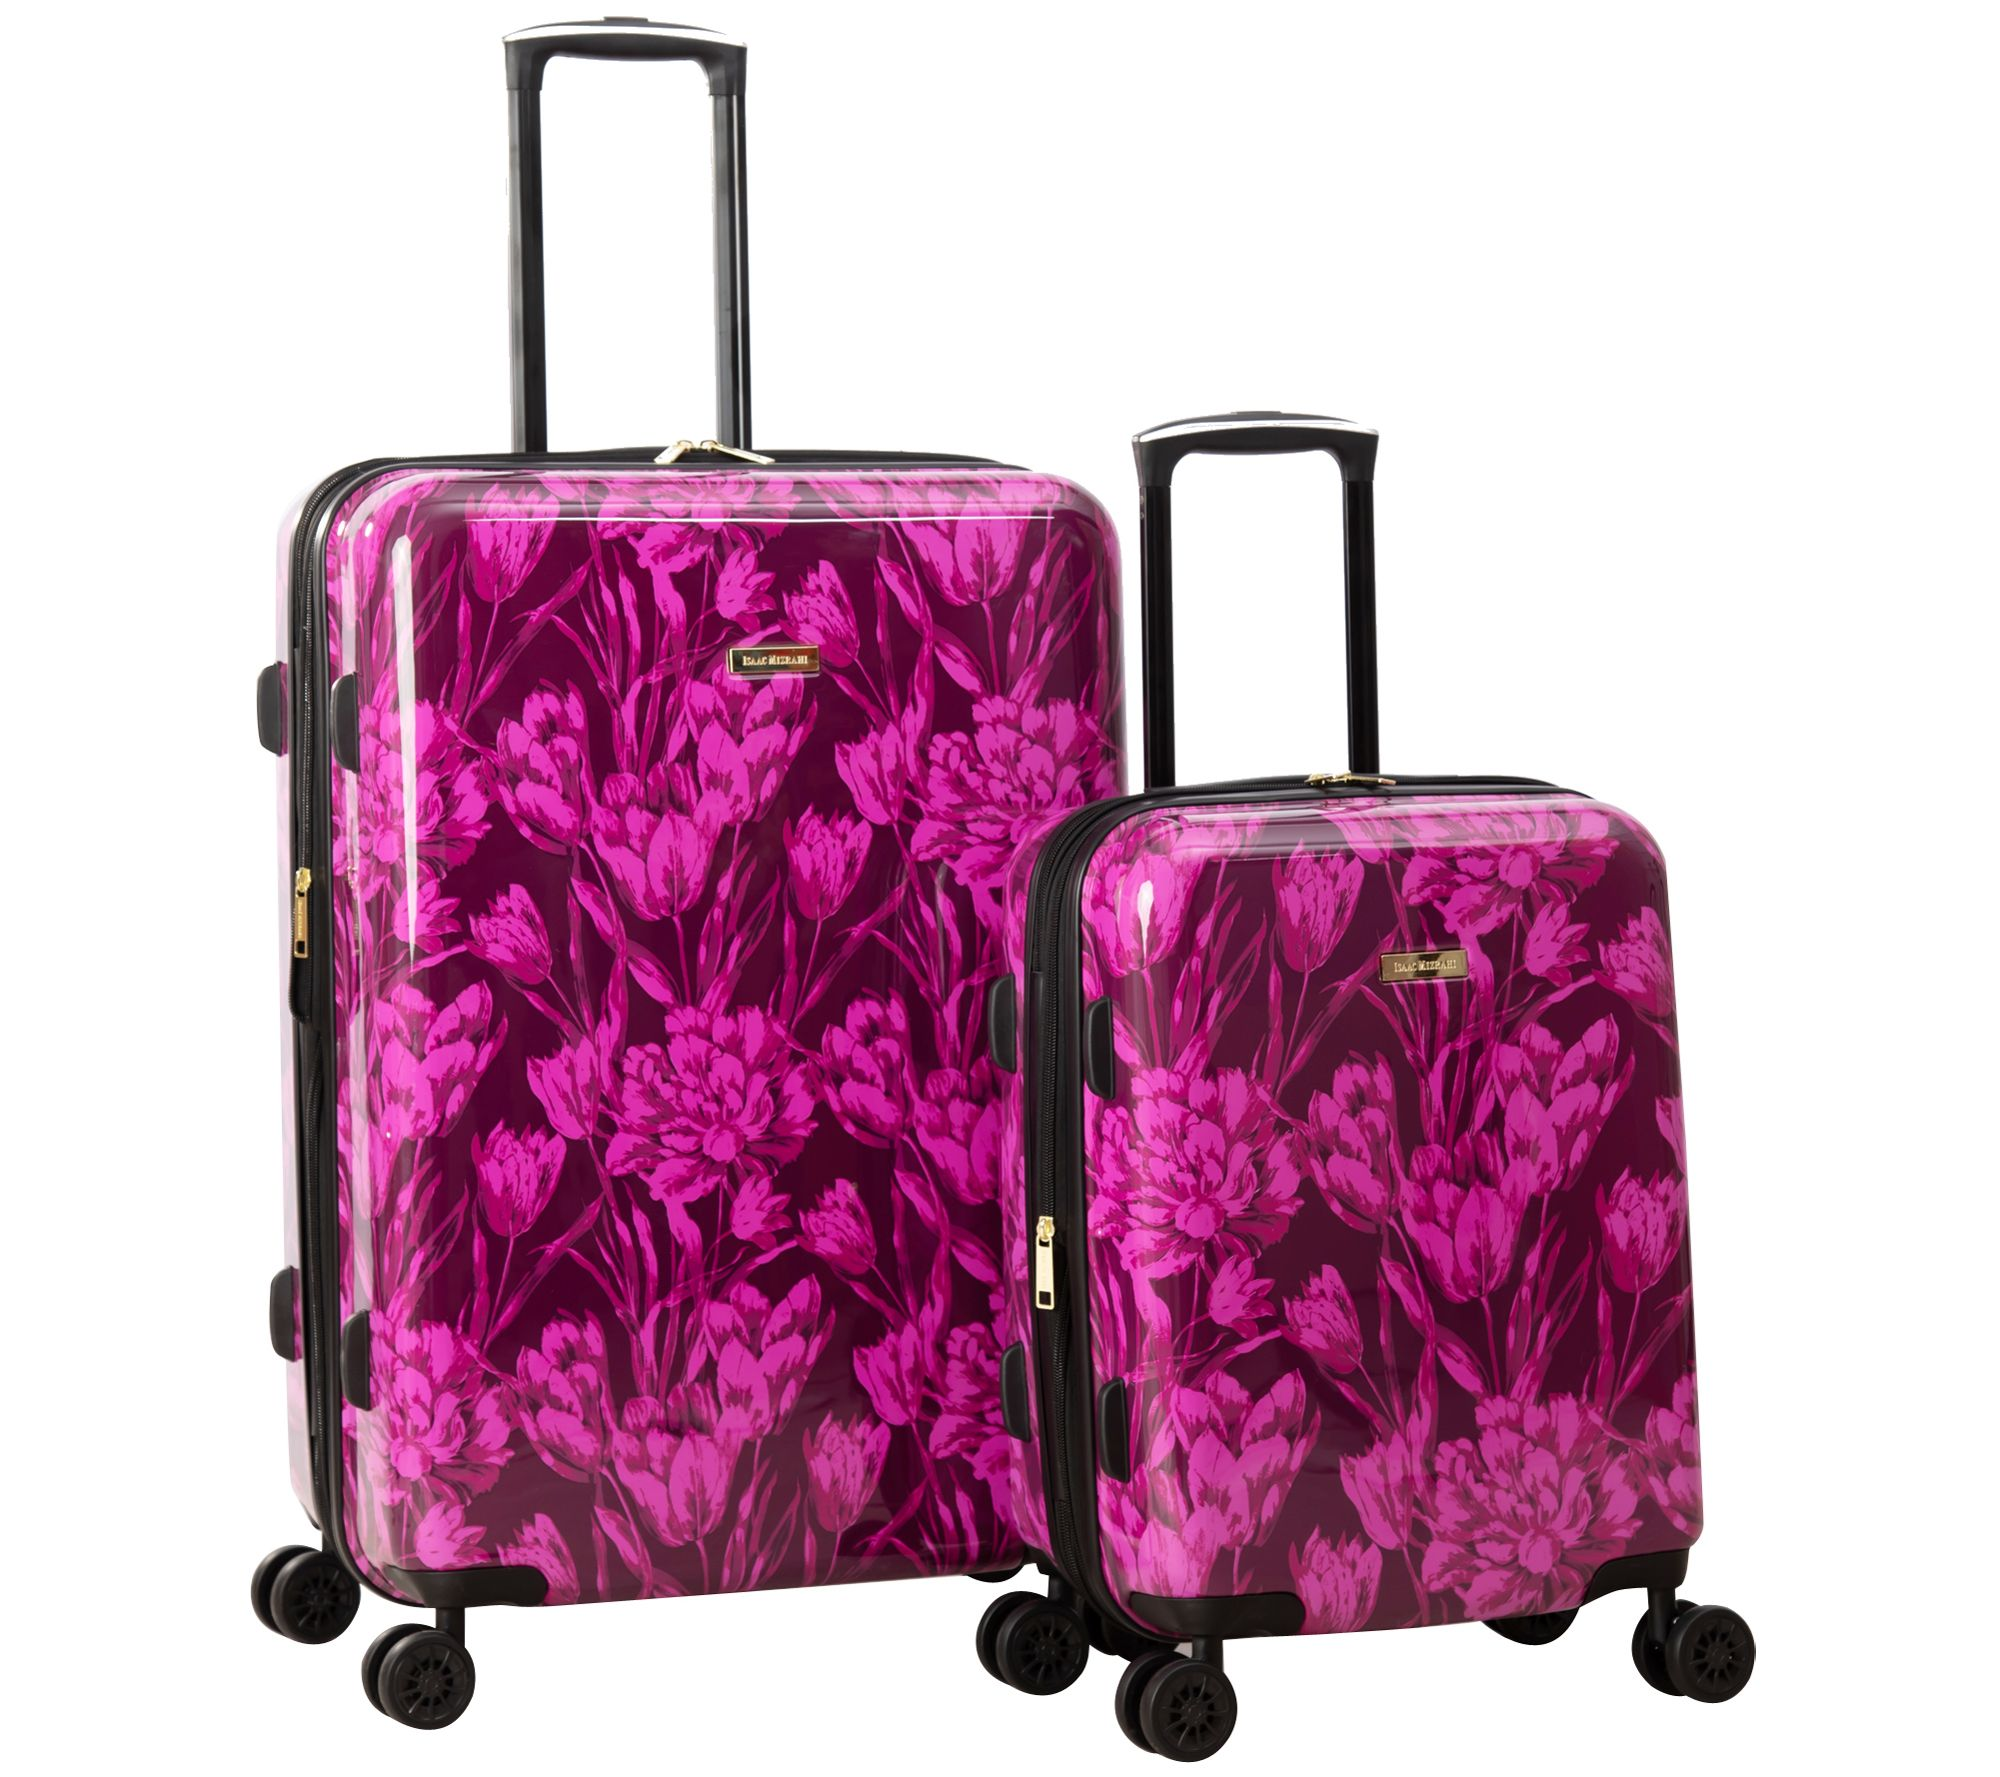 Pink Floral, 4-Piece Spinner Luggage Set Isaac Mizrahi Irwin 2 4-Wheel Spinner Luggage